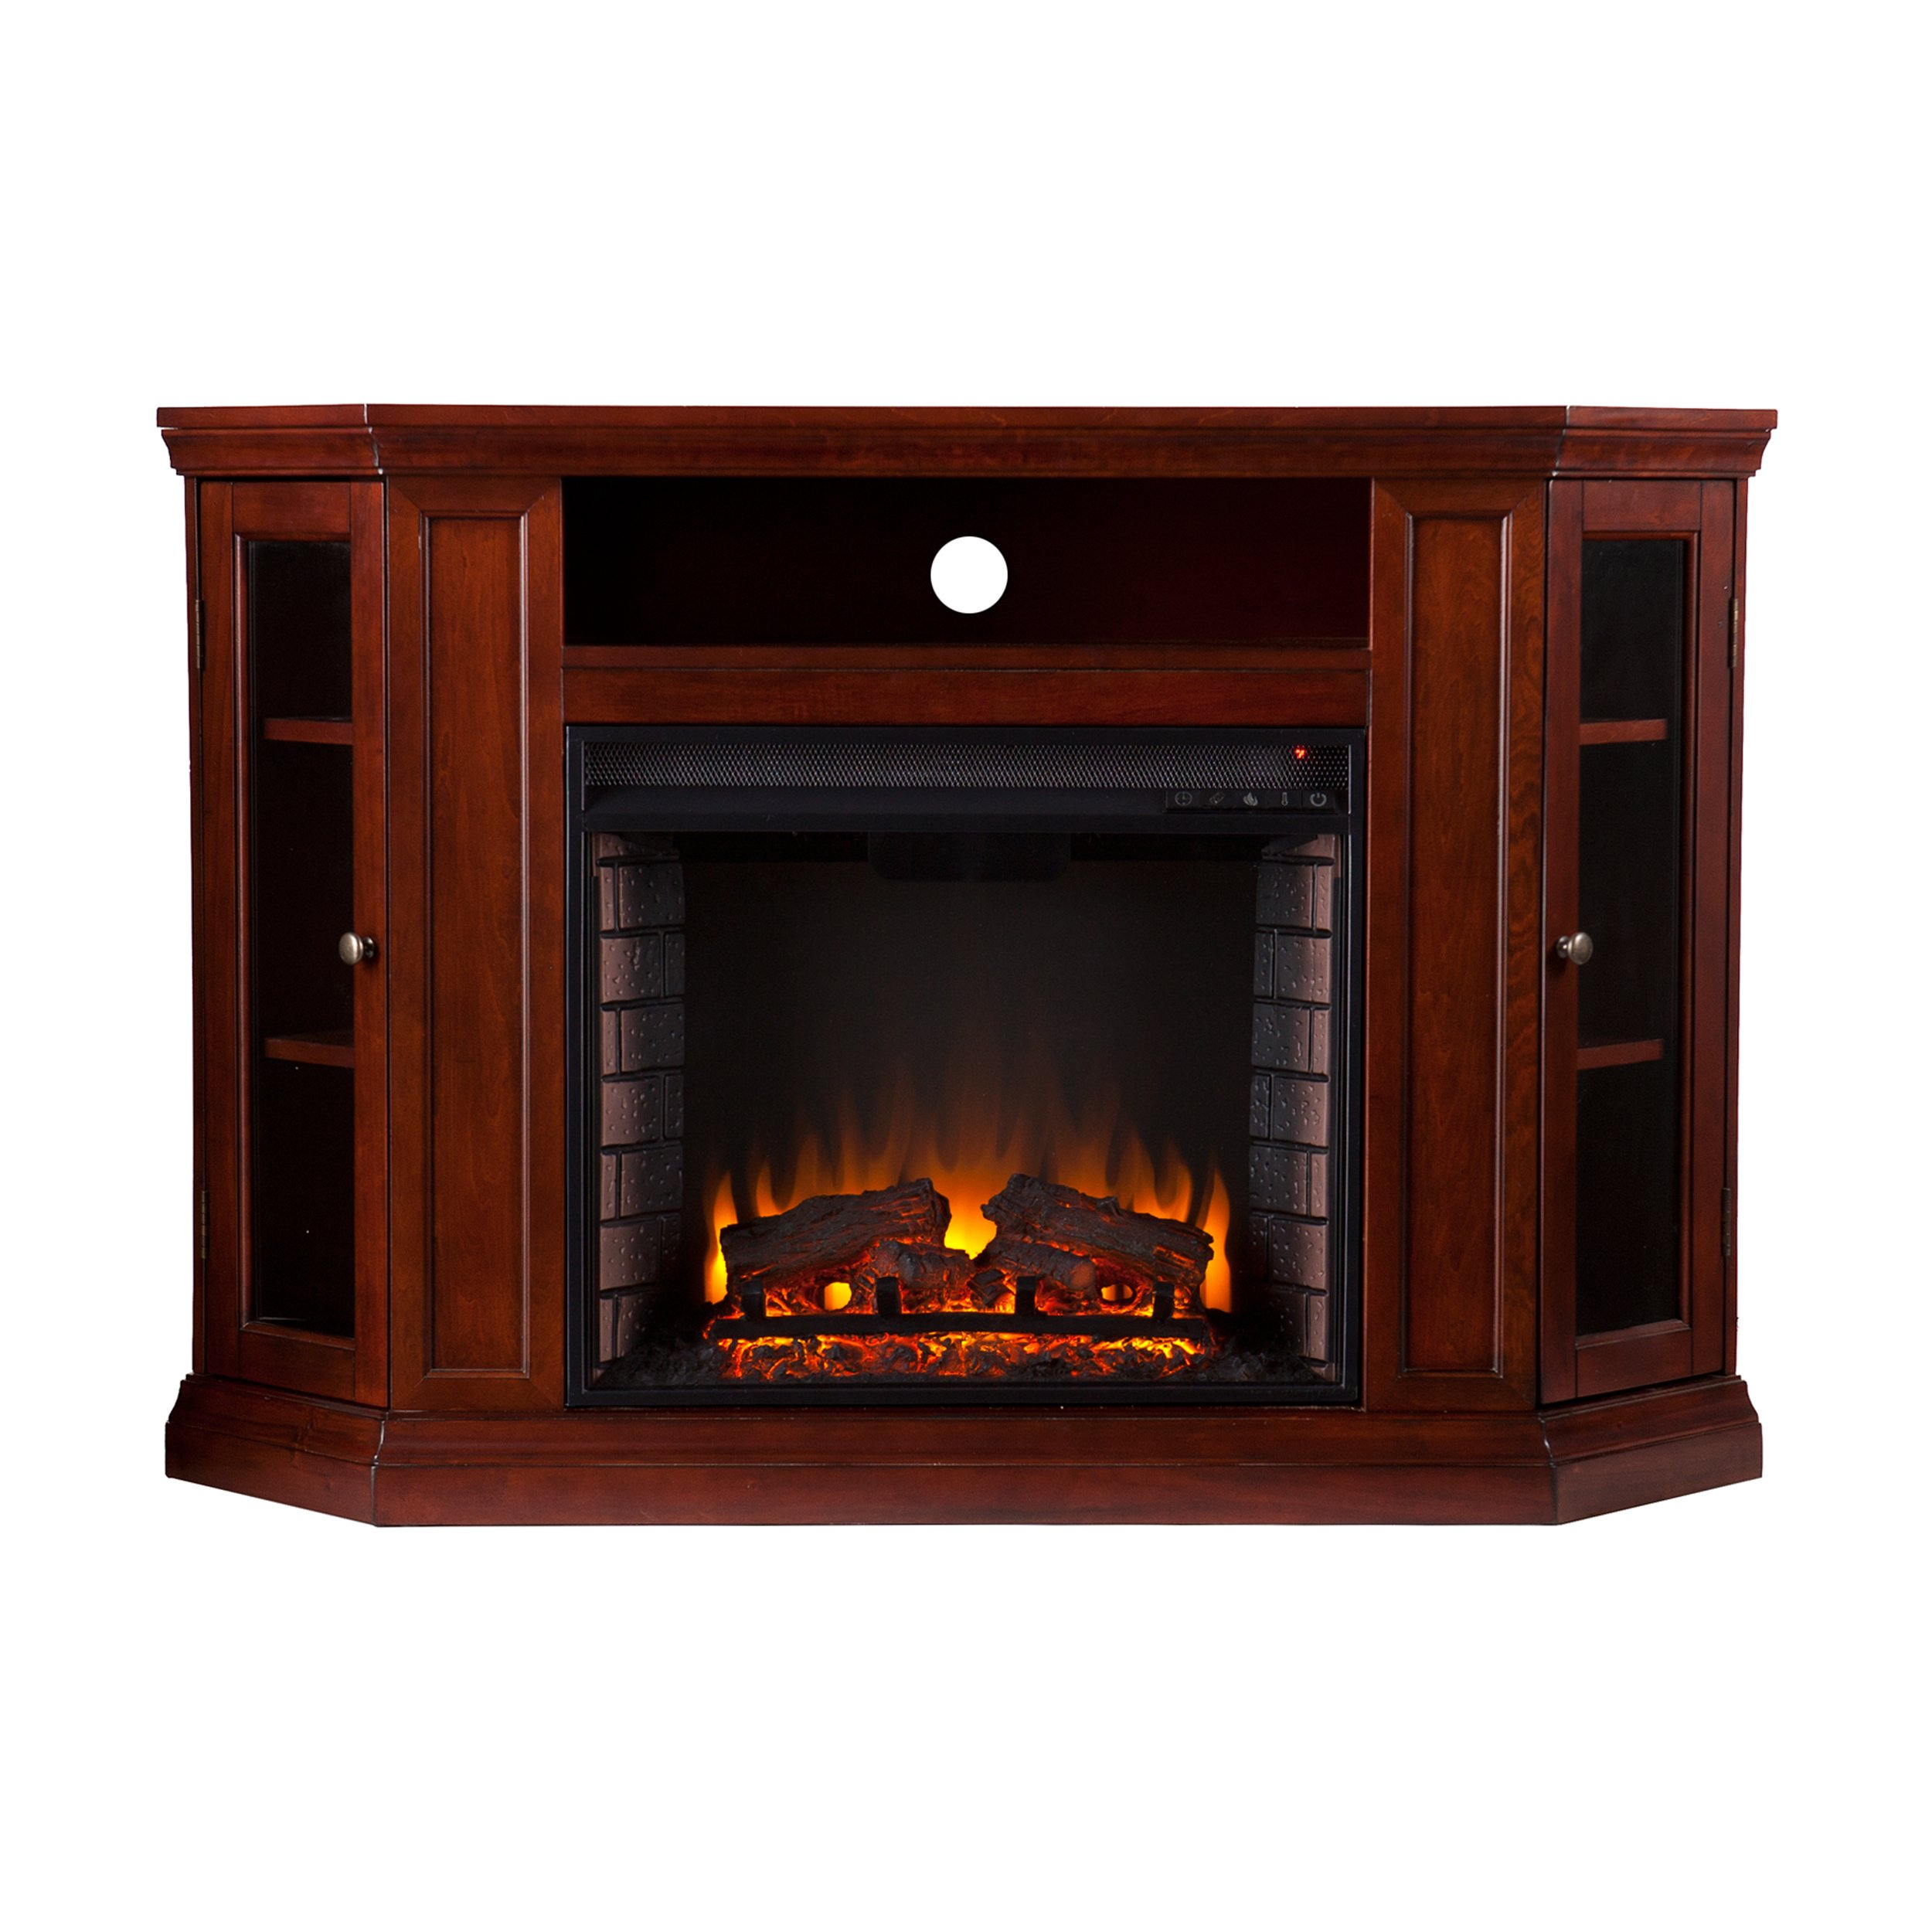 Southern Enterprises Claremont Convertible Media Electric Fireplace 48'' Wide, Cherry Finish by SEI